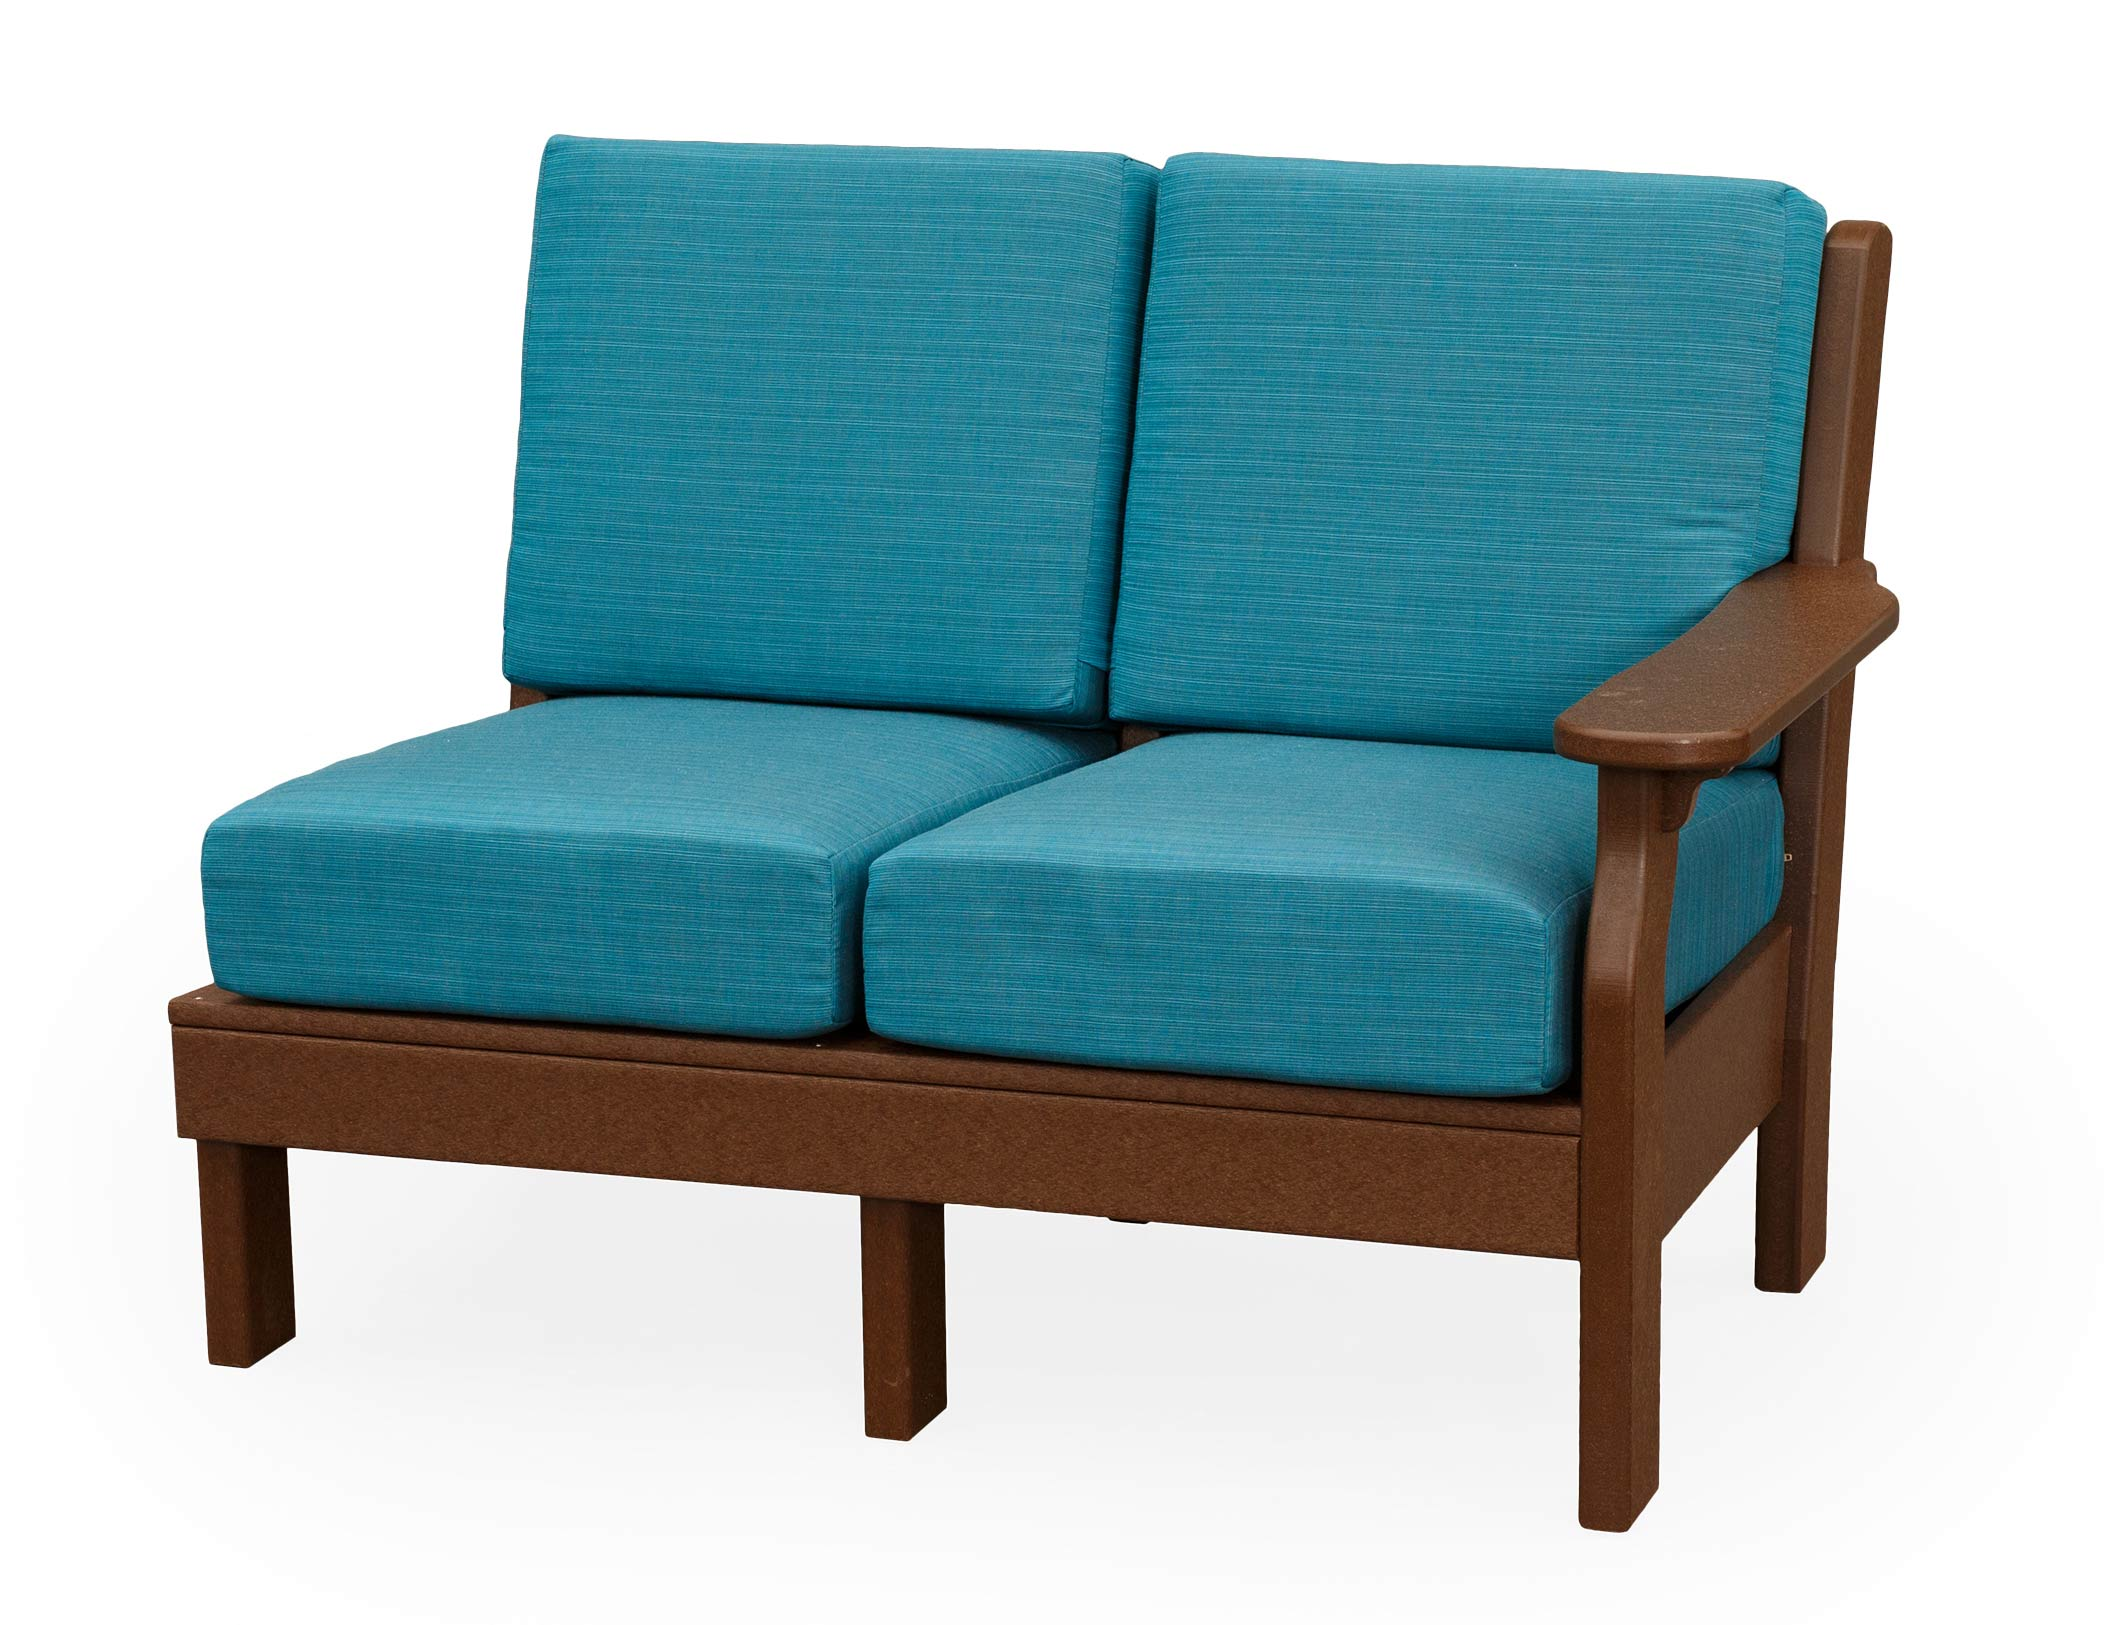 Deep Seating Replacement Cushions For Outdoor Furniture Set Newport